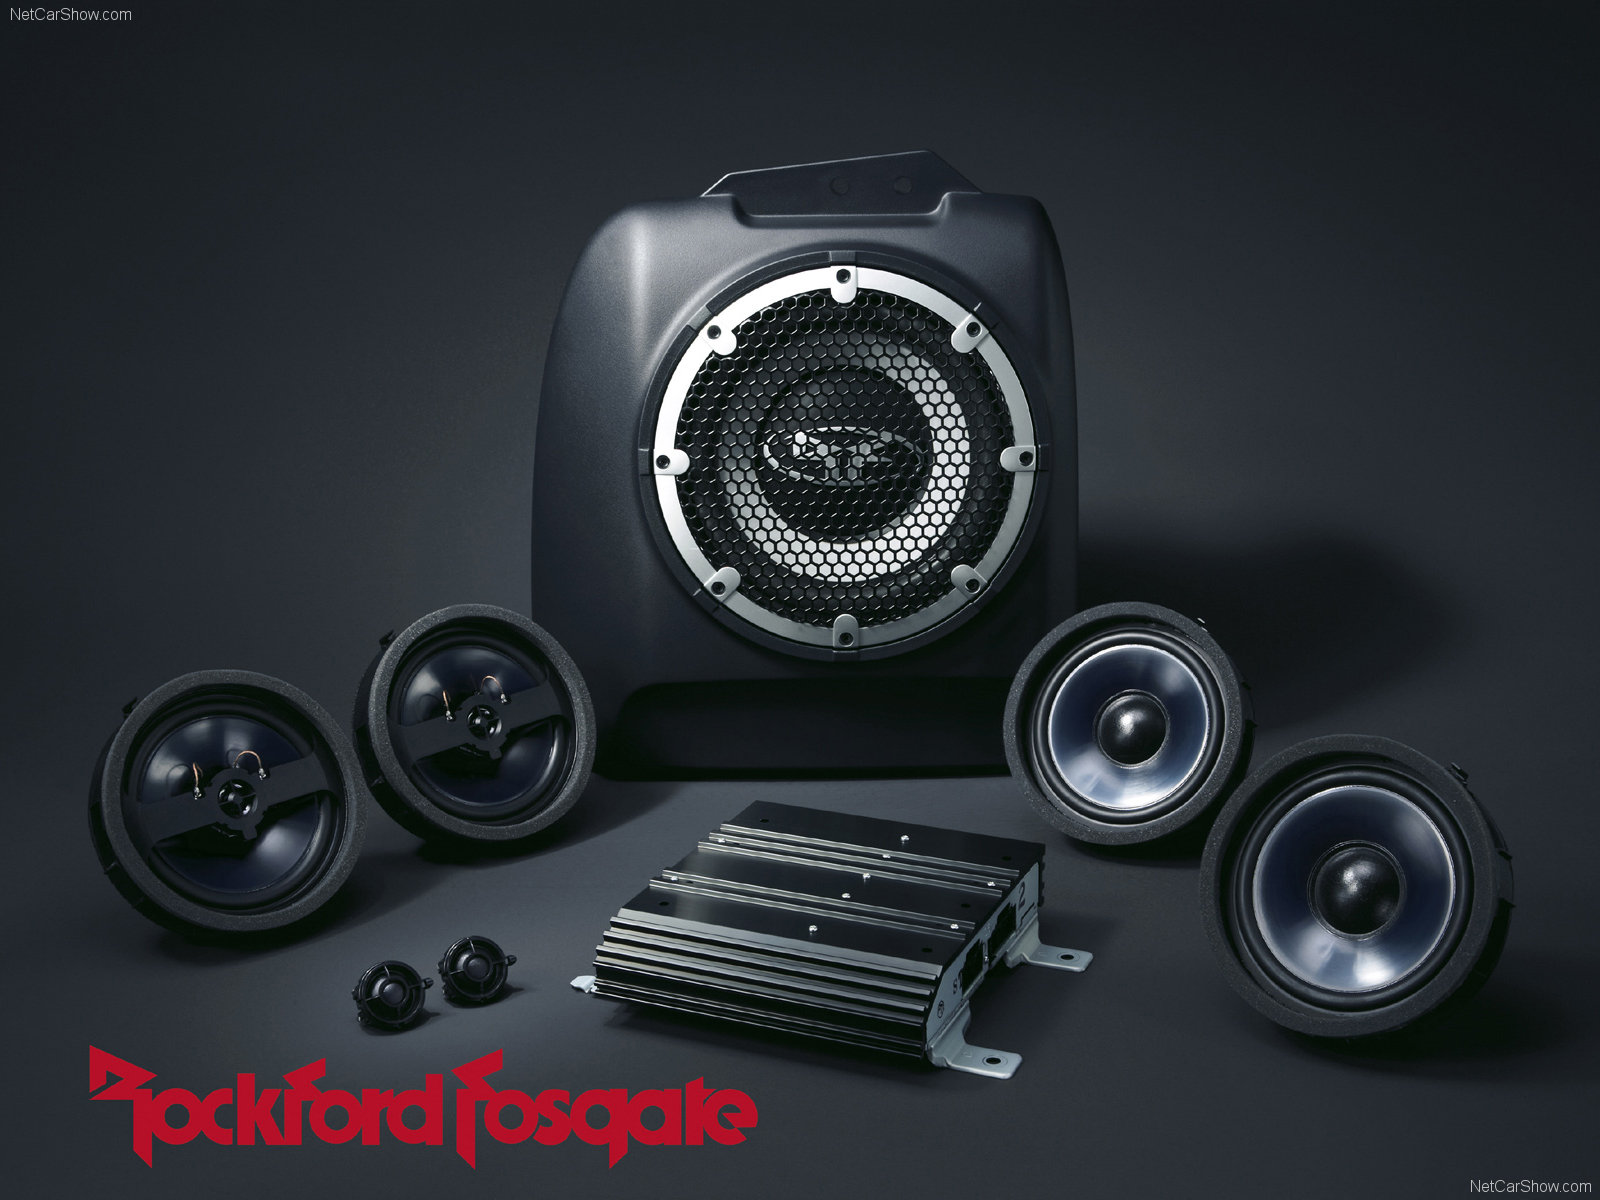 Rockford Fosgate Auto Parts on Mitsubishi Auto Parts at CarDomain.com